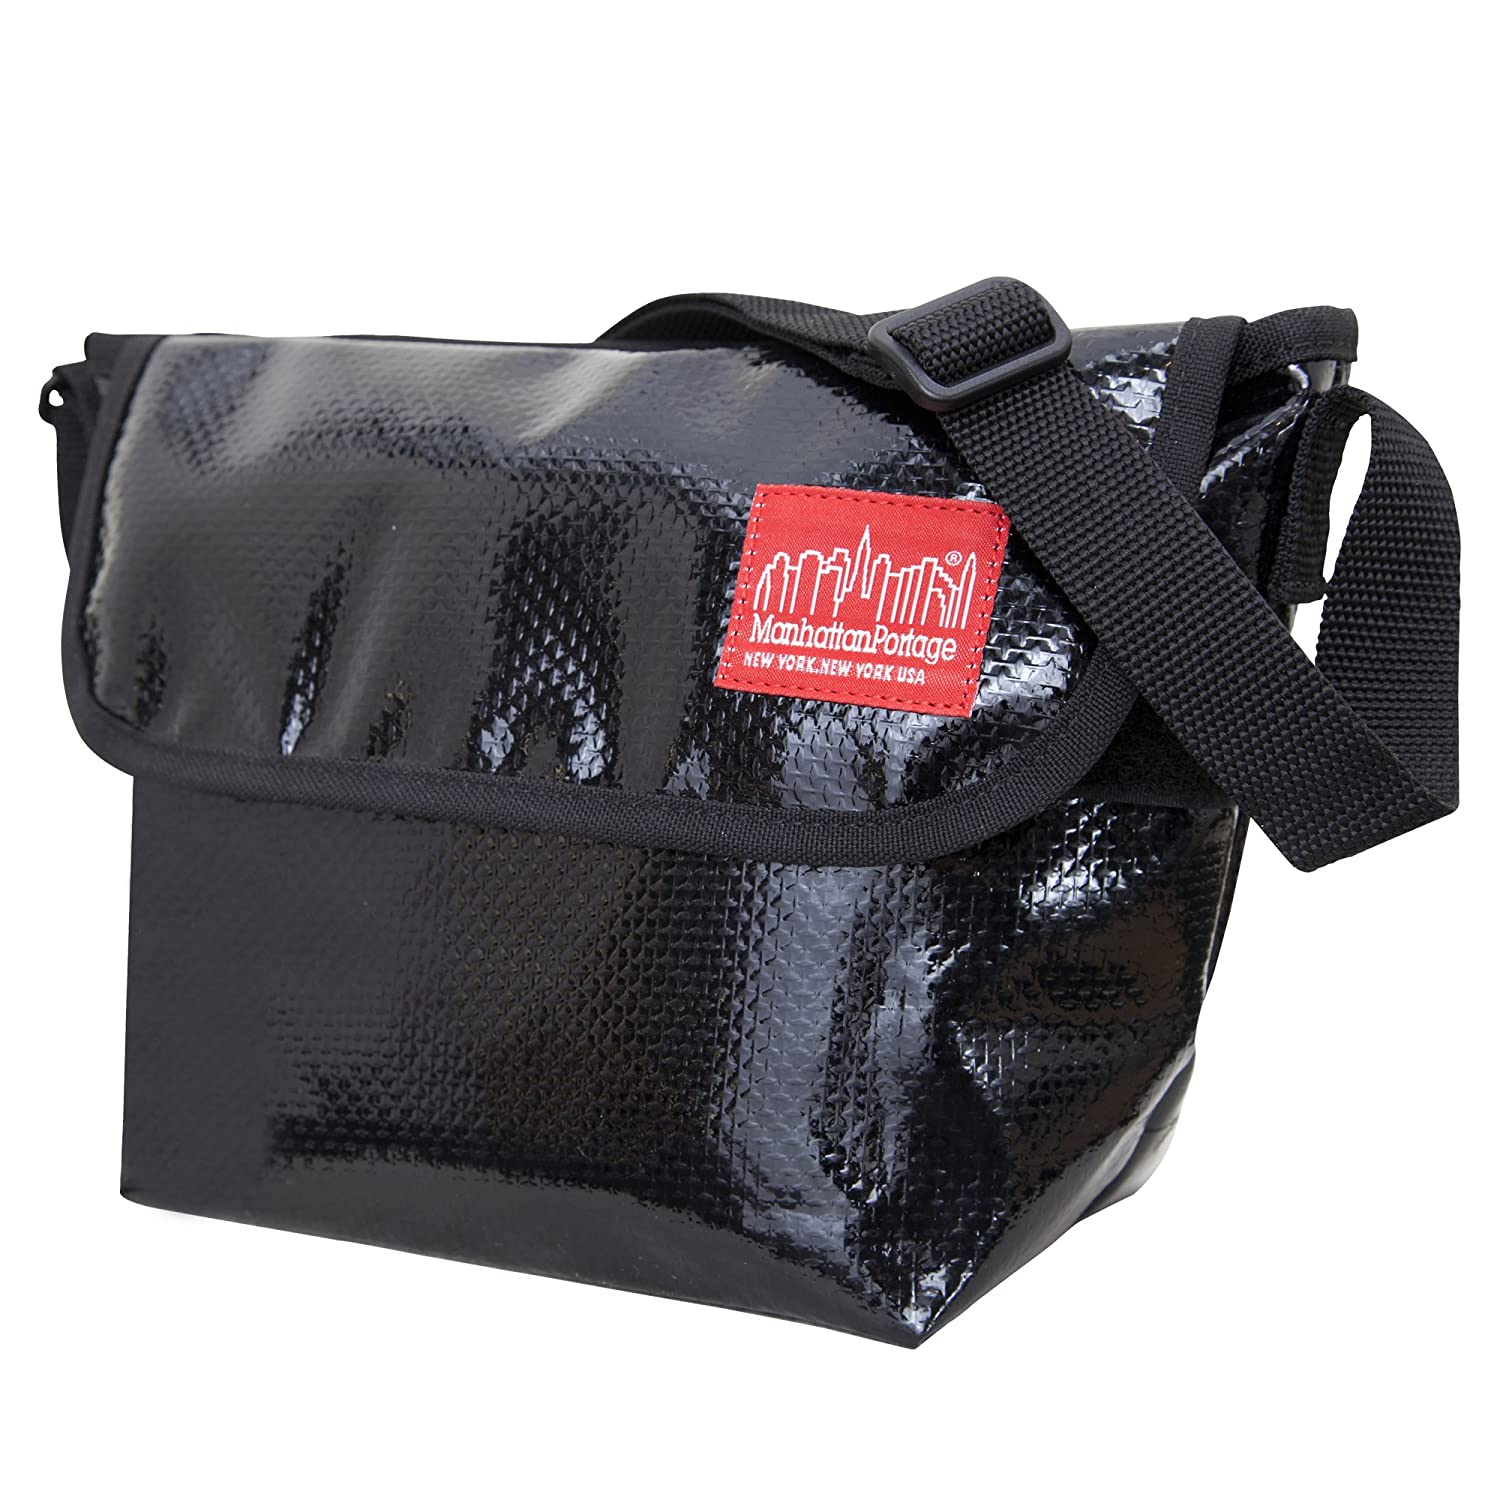 Manhattan Portage Vinyl NY Messenger Bag